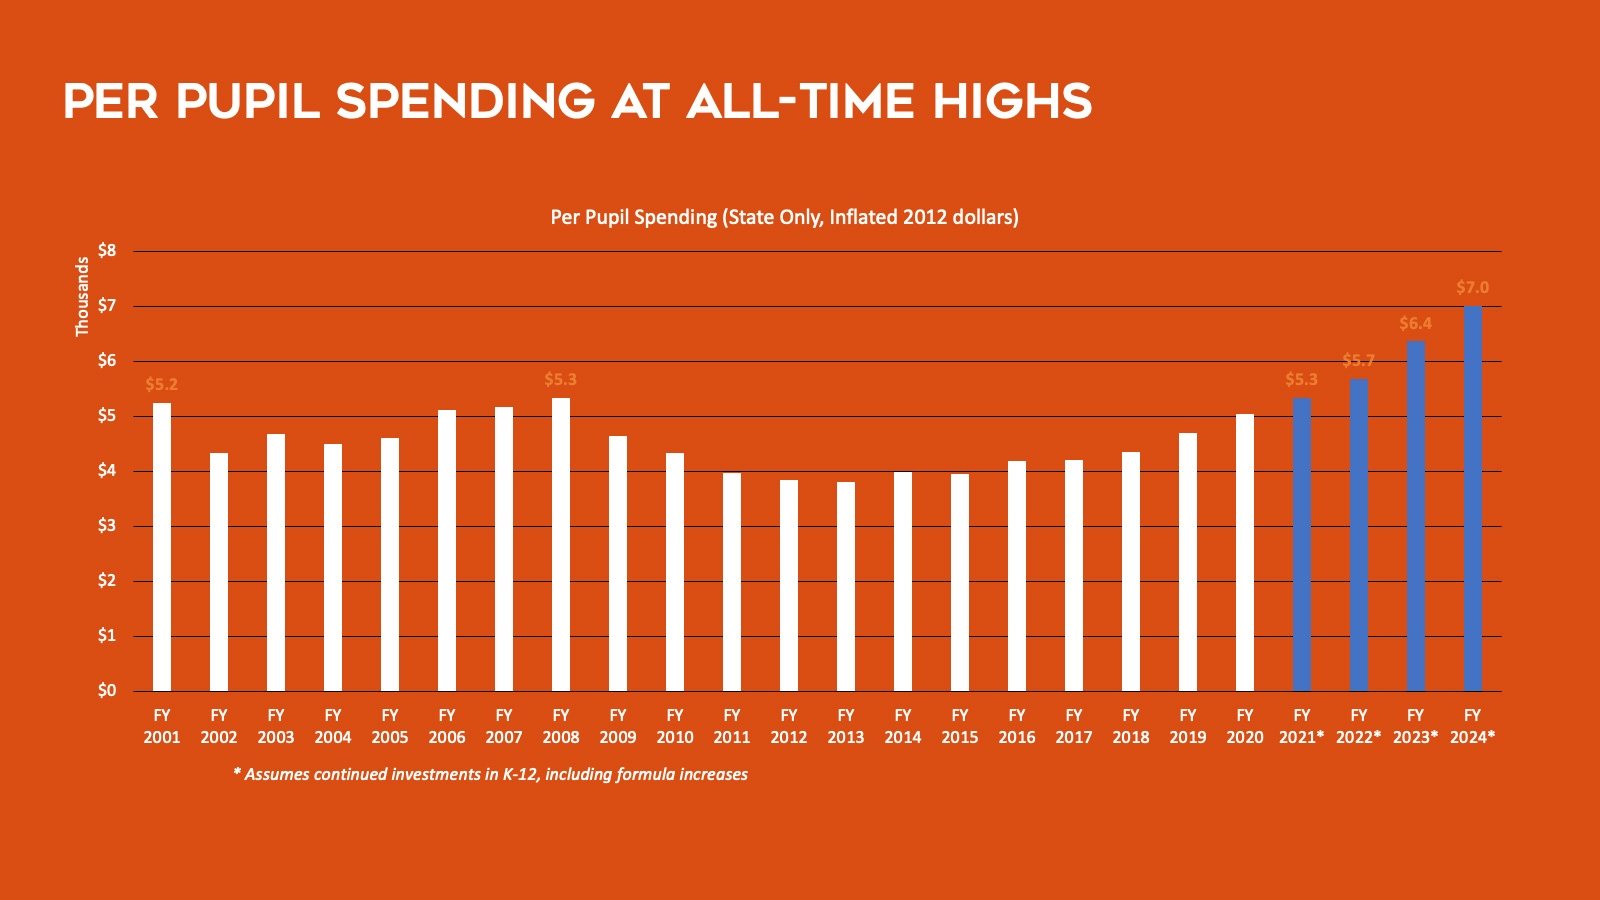 Per pupil spending at all-time highs